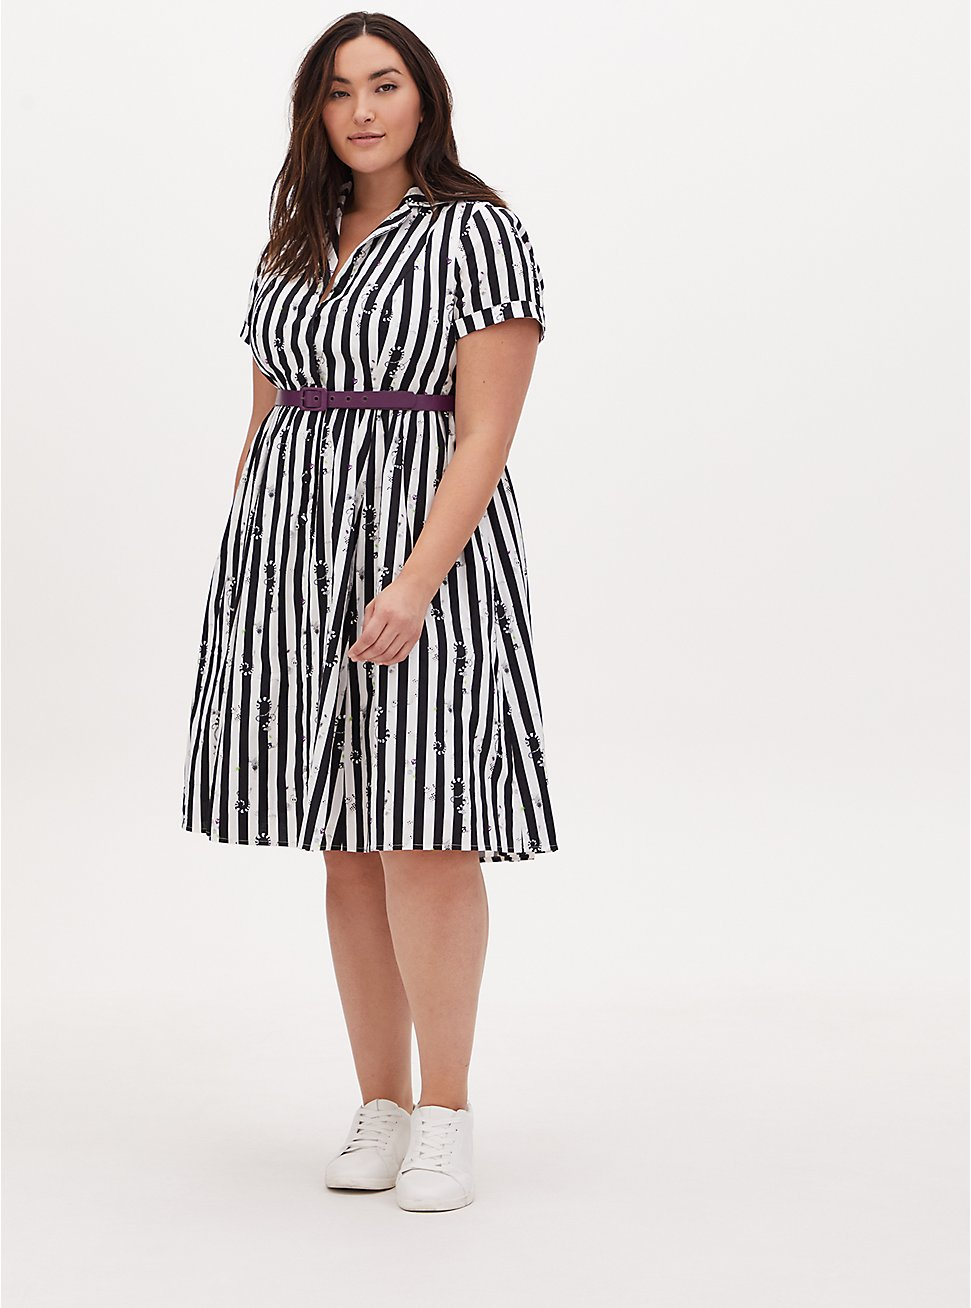 Beetlejuice Snake Stripe Black & White Belted Swing Dress, BLACK  WHITE, hi-res